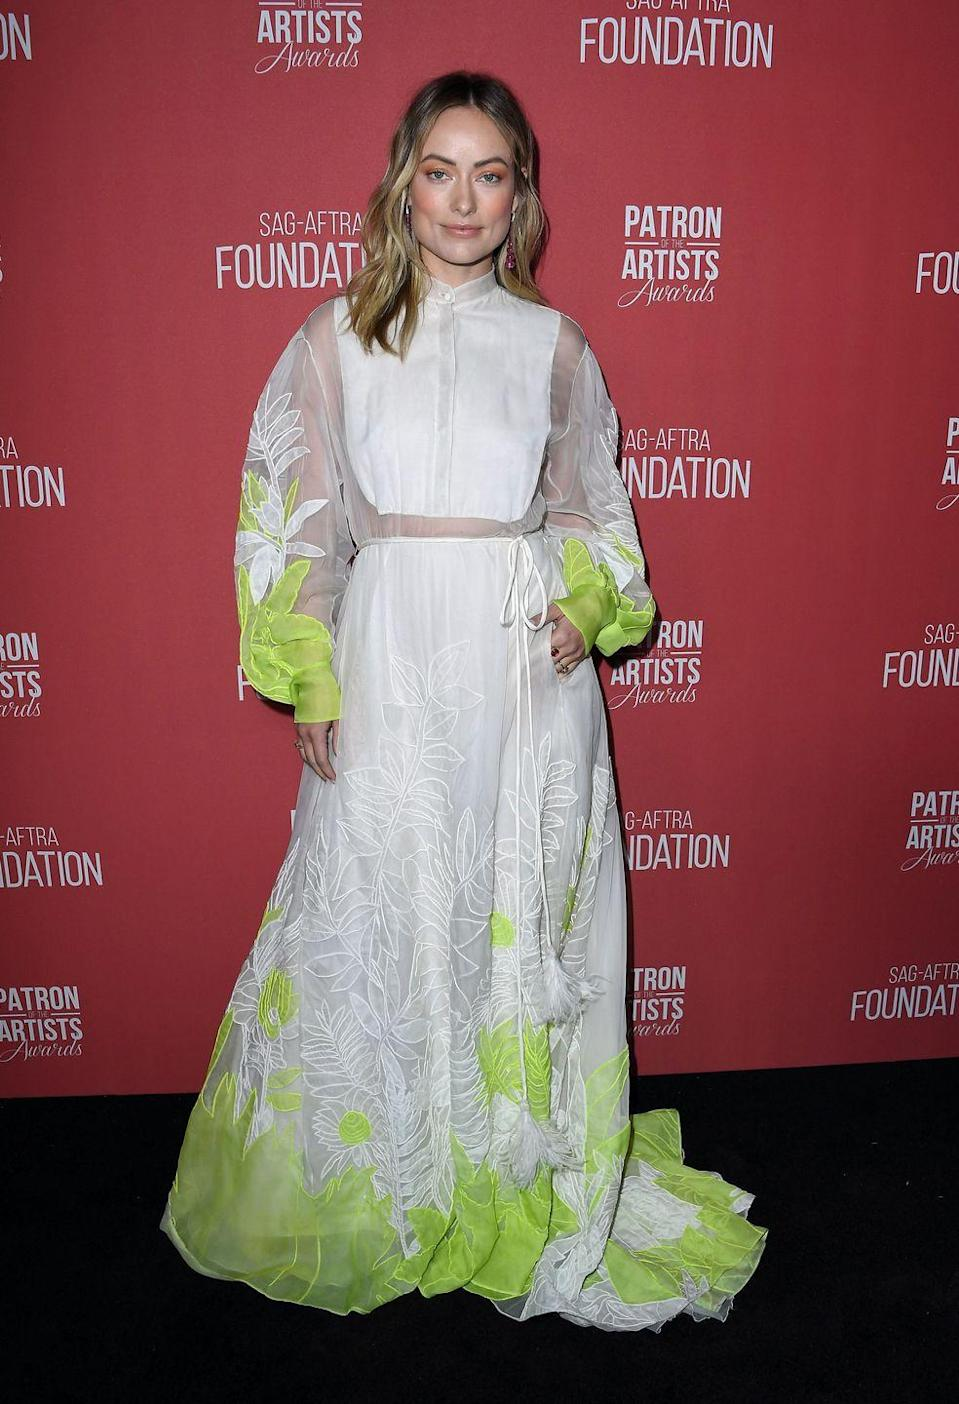 <p>Wilde wore a full-length white dress with see-through mesh sleeve and waistband accents and lime-green cuffs and hem. <br></p>